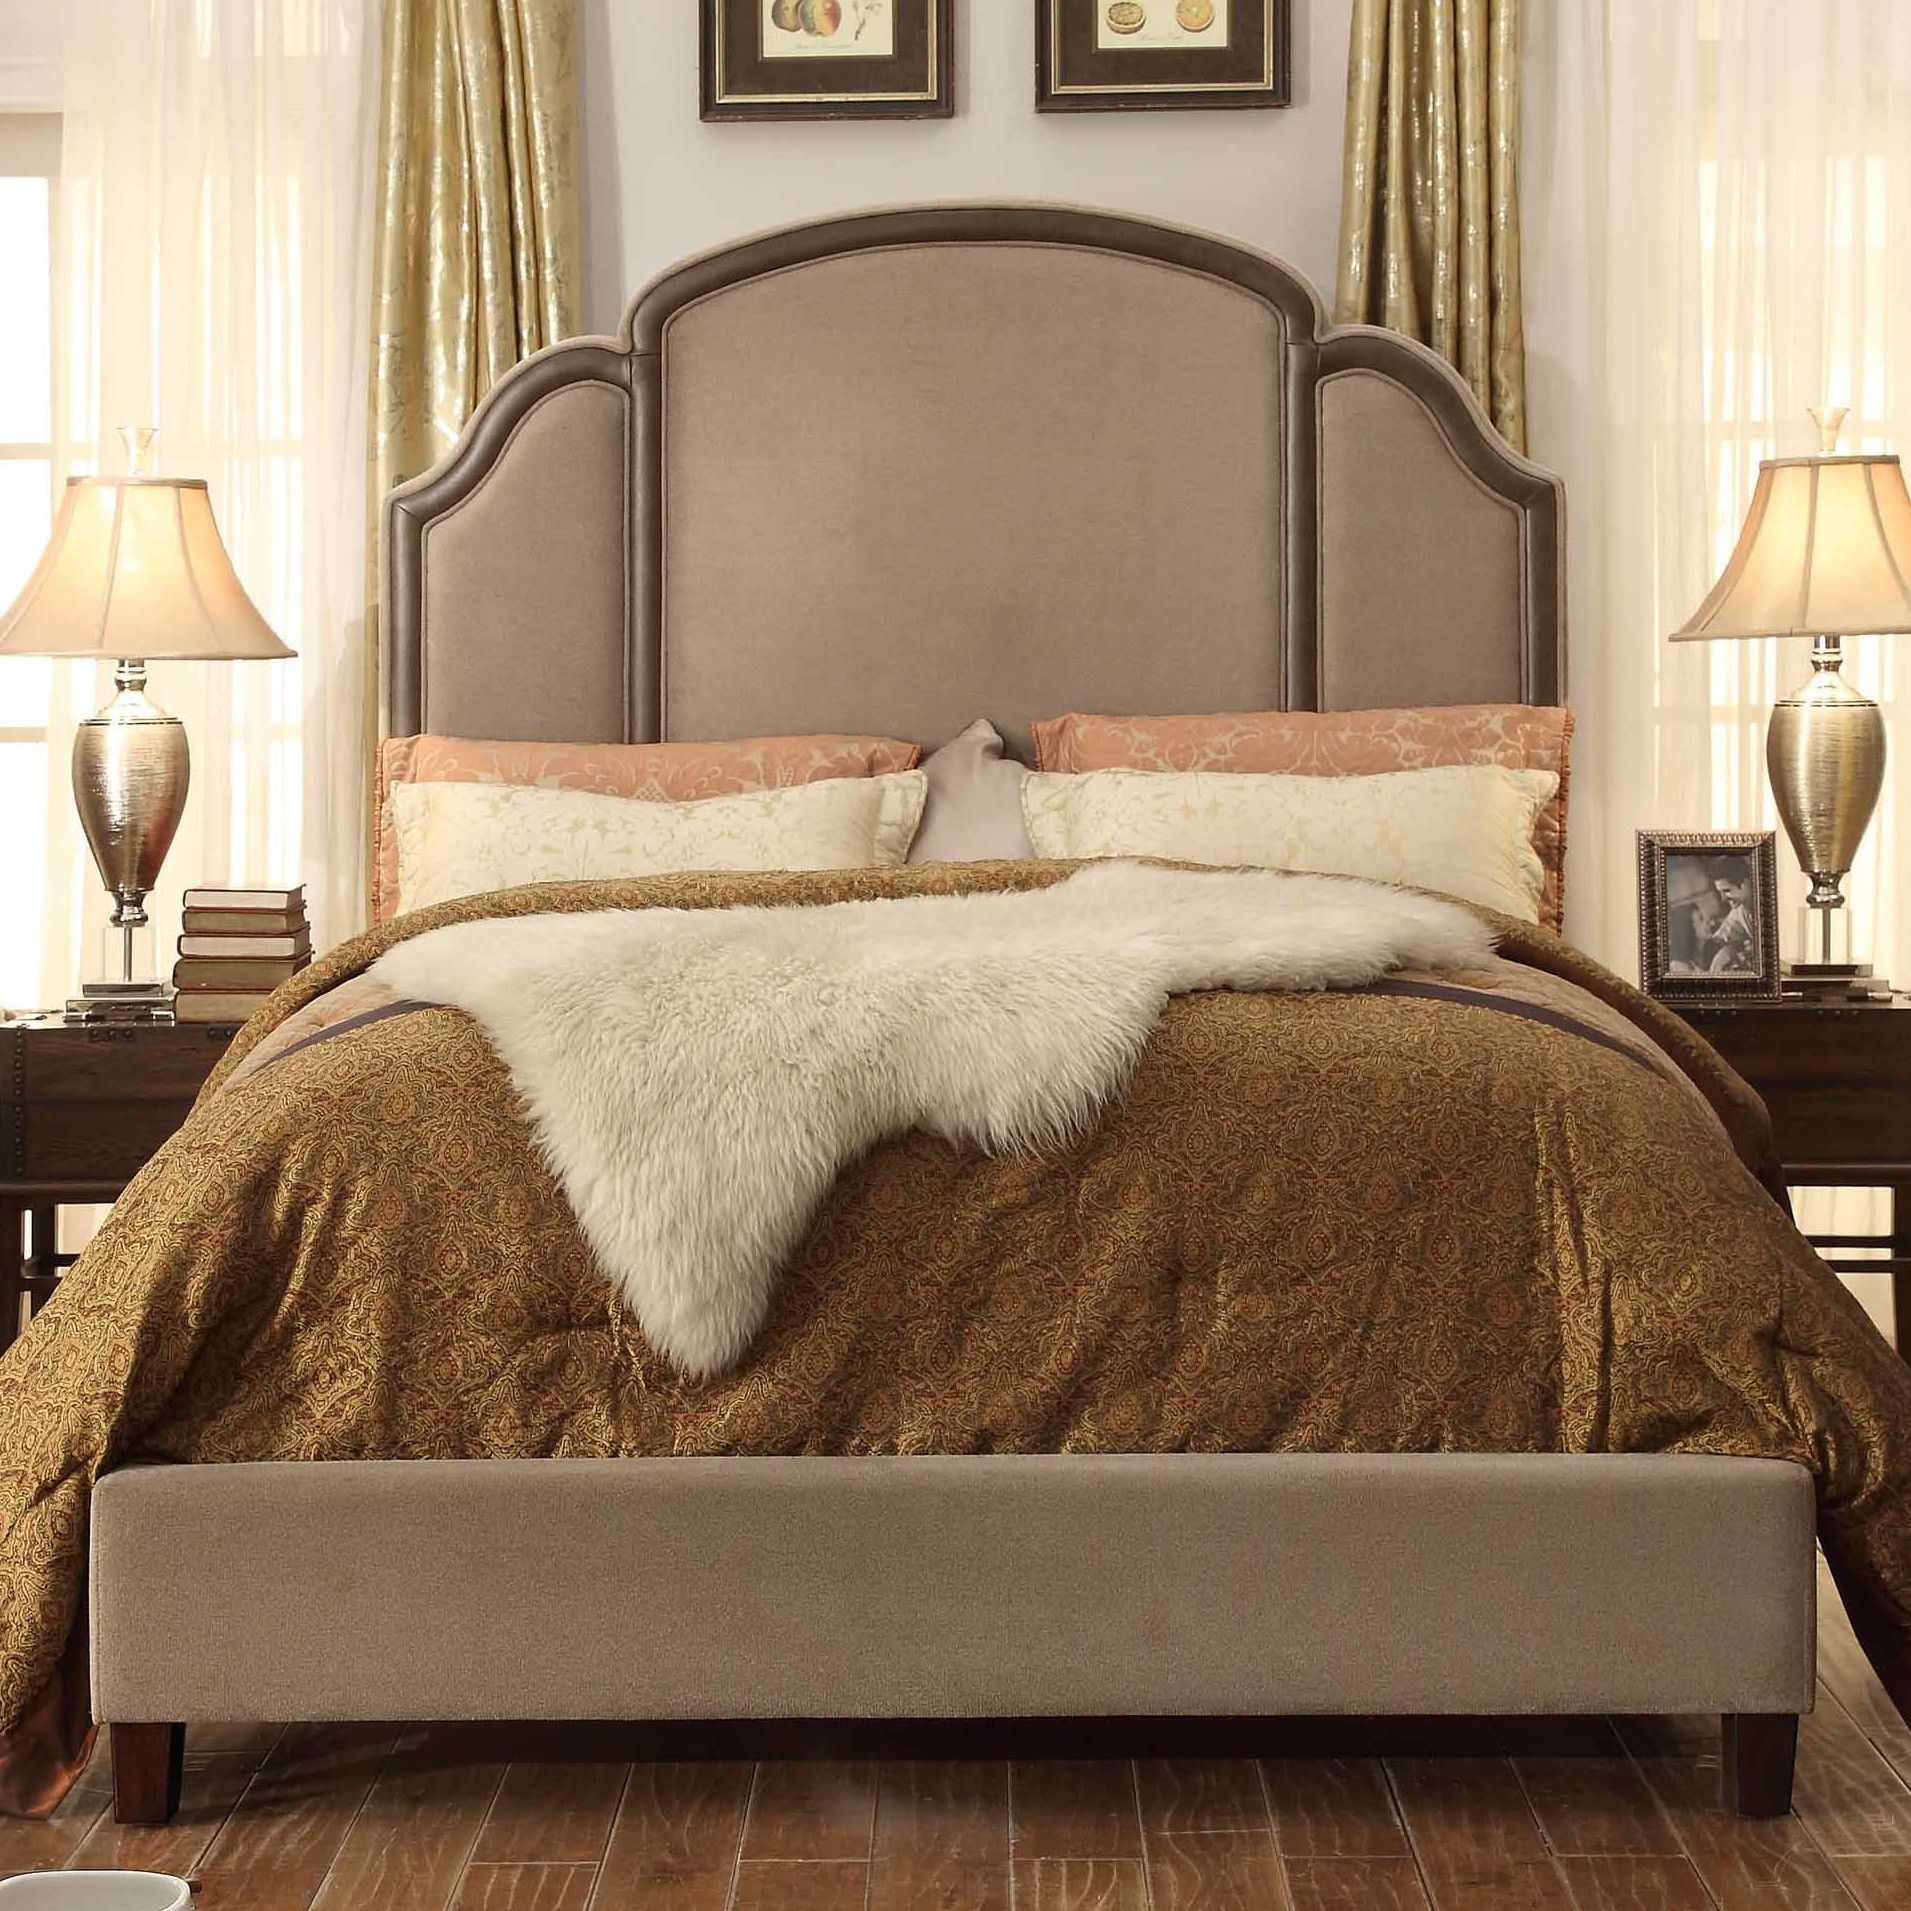 ricca queen upholstered platform bed | products | pinterest | betten